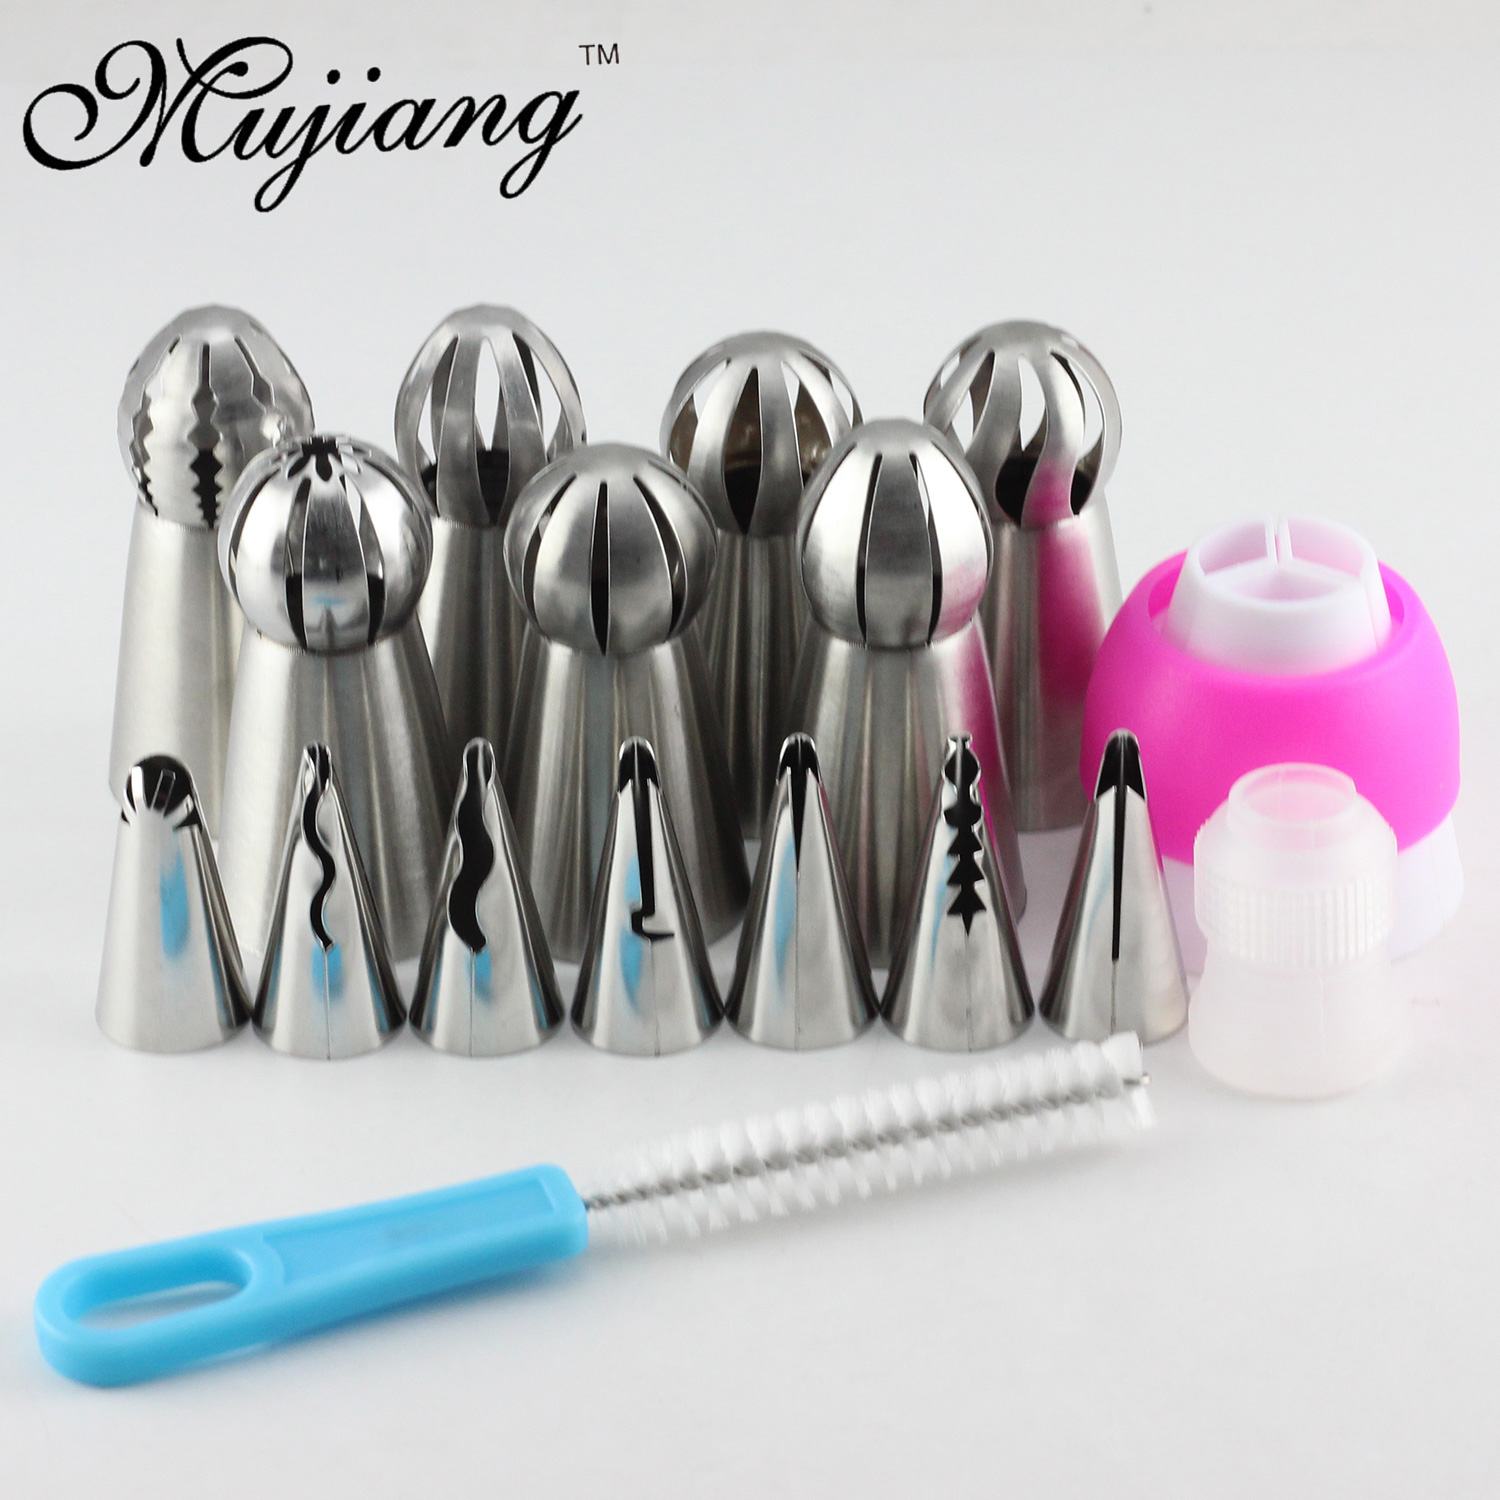 Mujiang 17Pcs Russian Spherical Ball Icing Piping Nozzles Korean Style Pastry Tips Stainless Steel Cake Dessert Decorating Tools